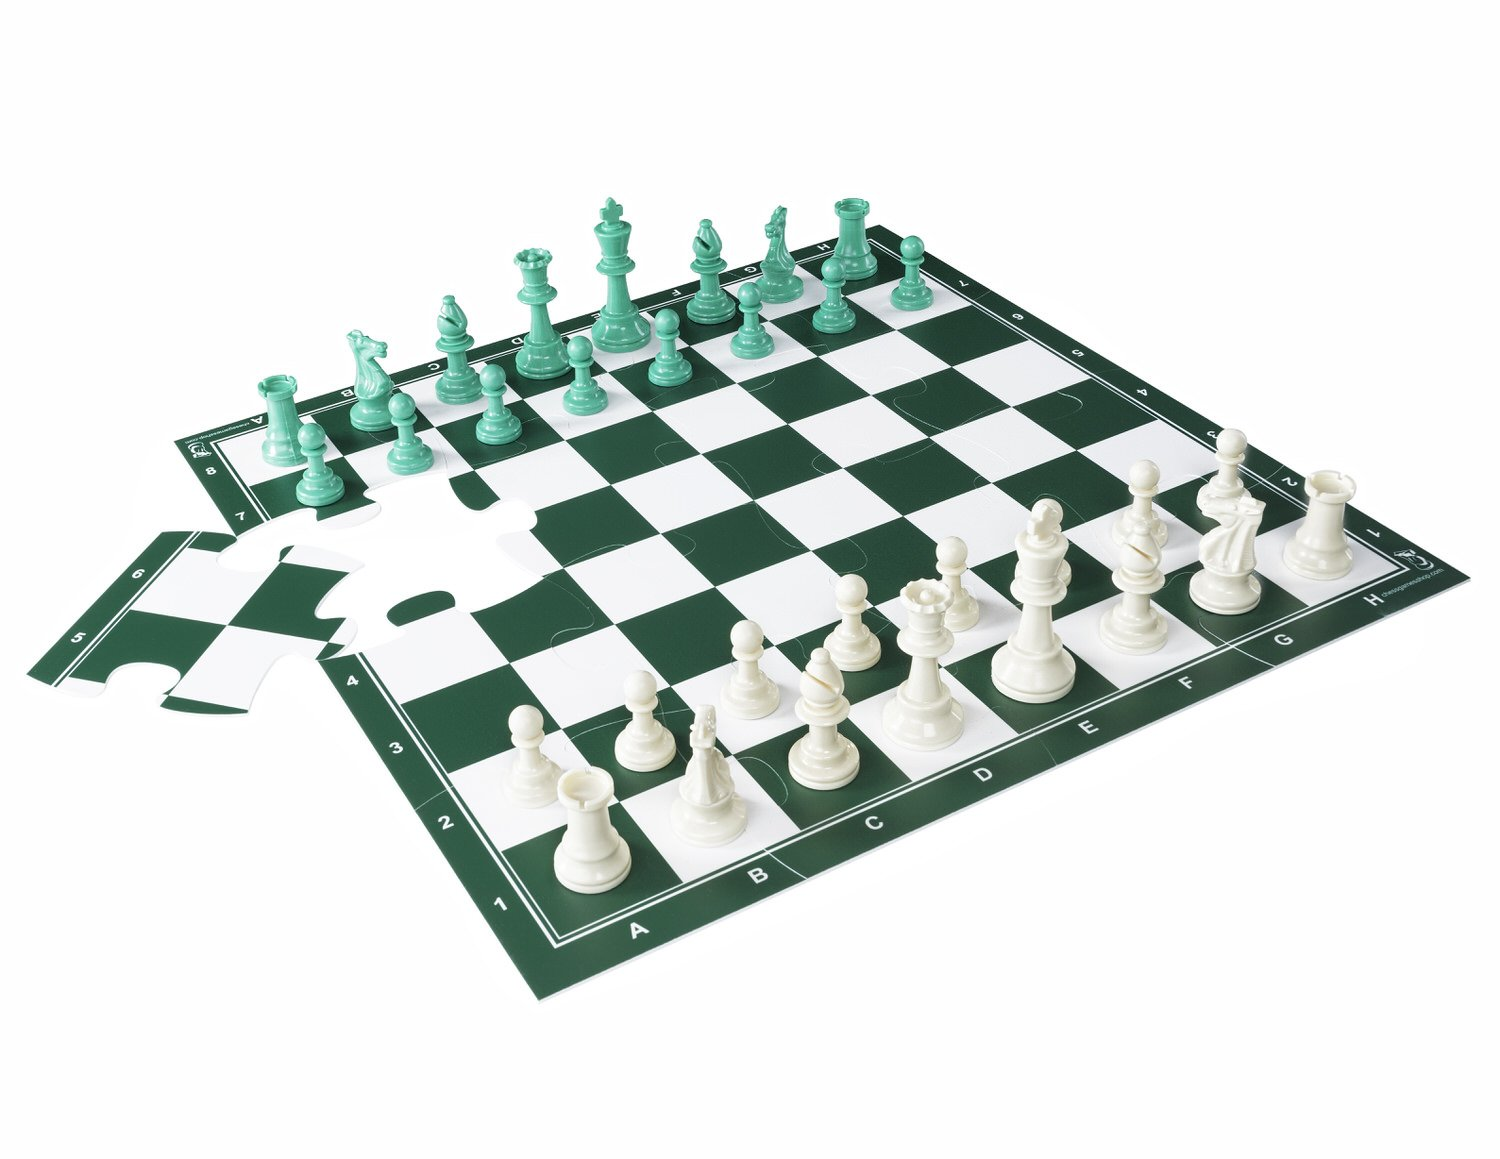 DGT Centaur Computer - Kaoori Best Chess Sets Store UK